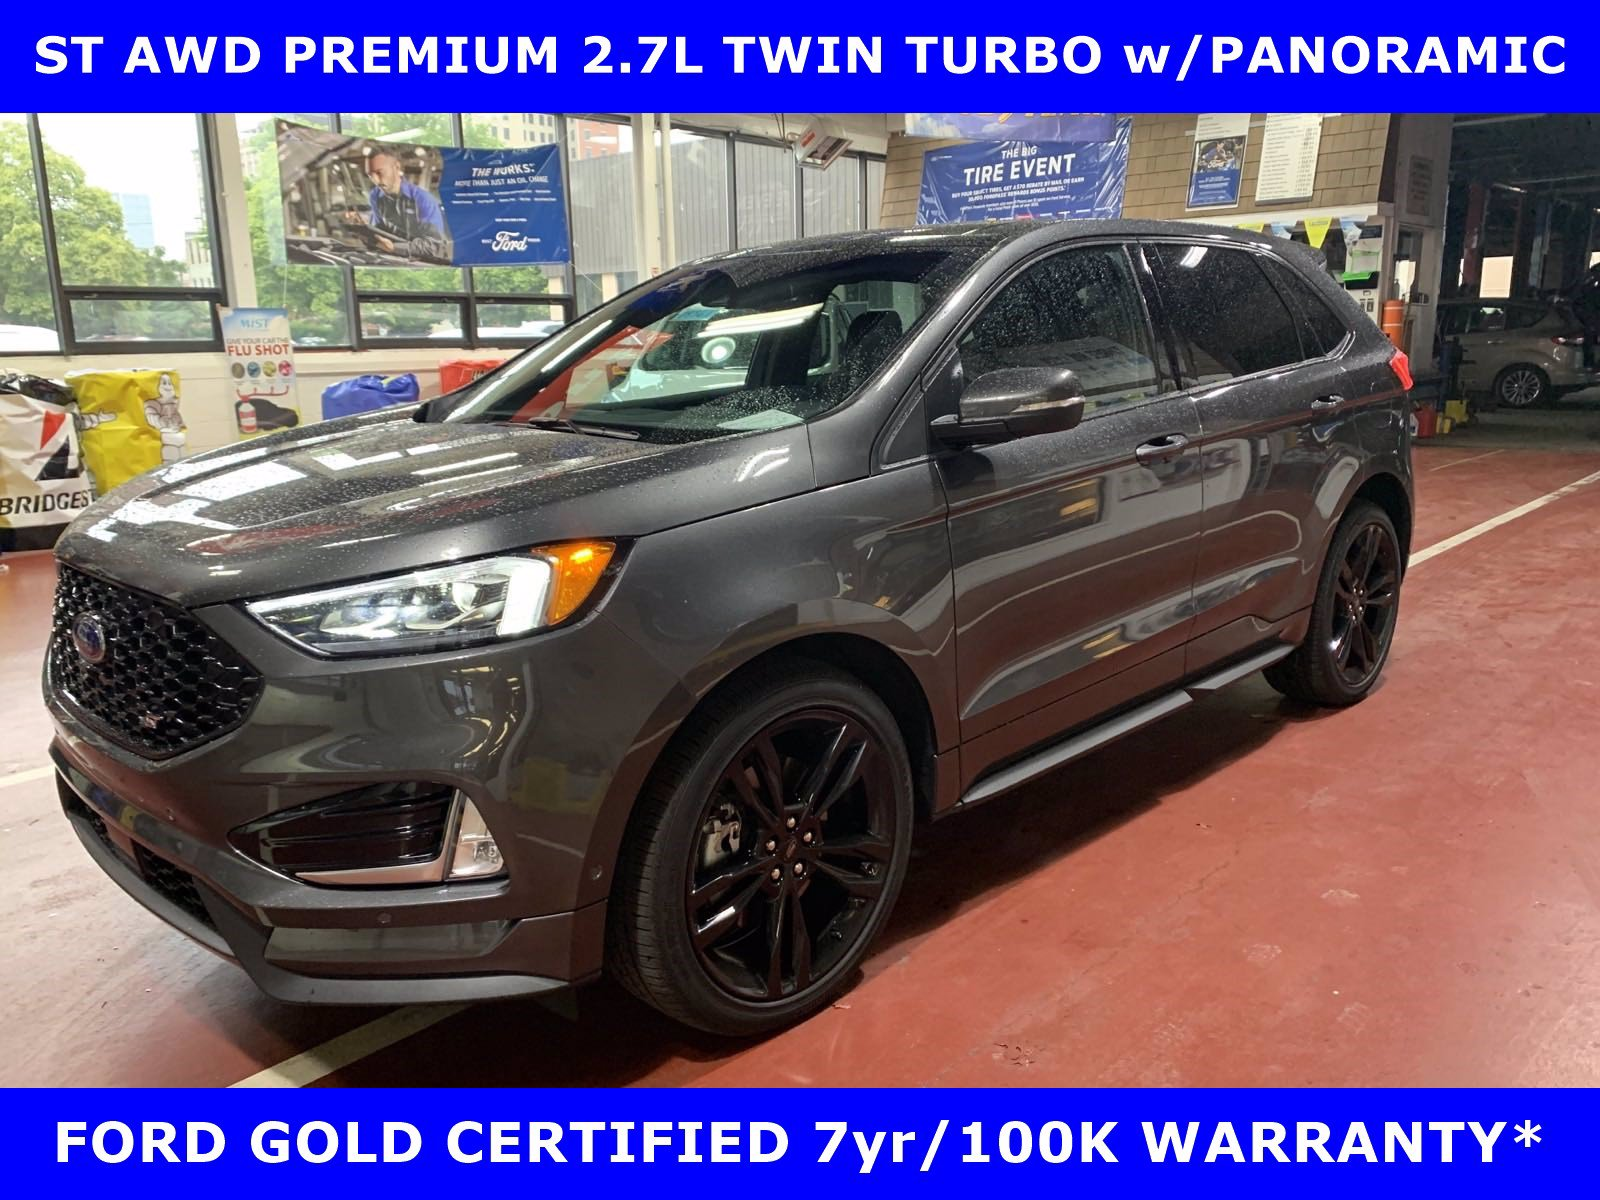 2020 Ford Edge ST PREM AWD 2.7L TWIN TURBO w/PANORAMIC-21in ALLOY SUV